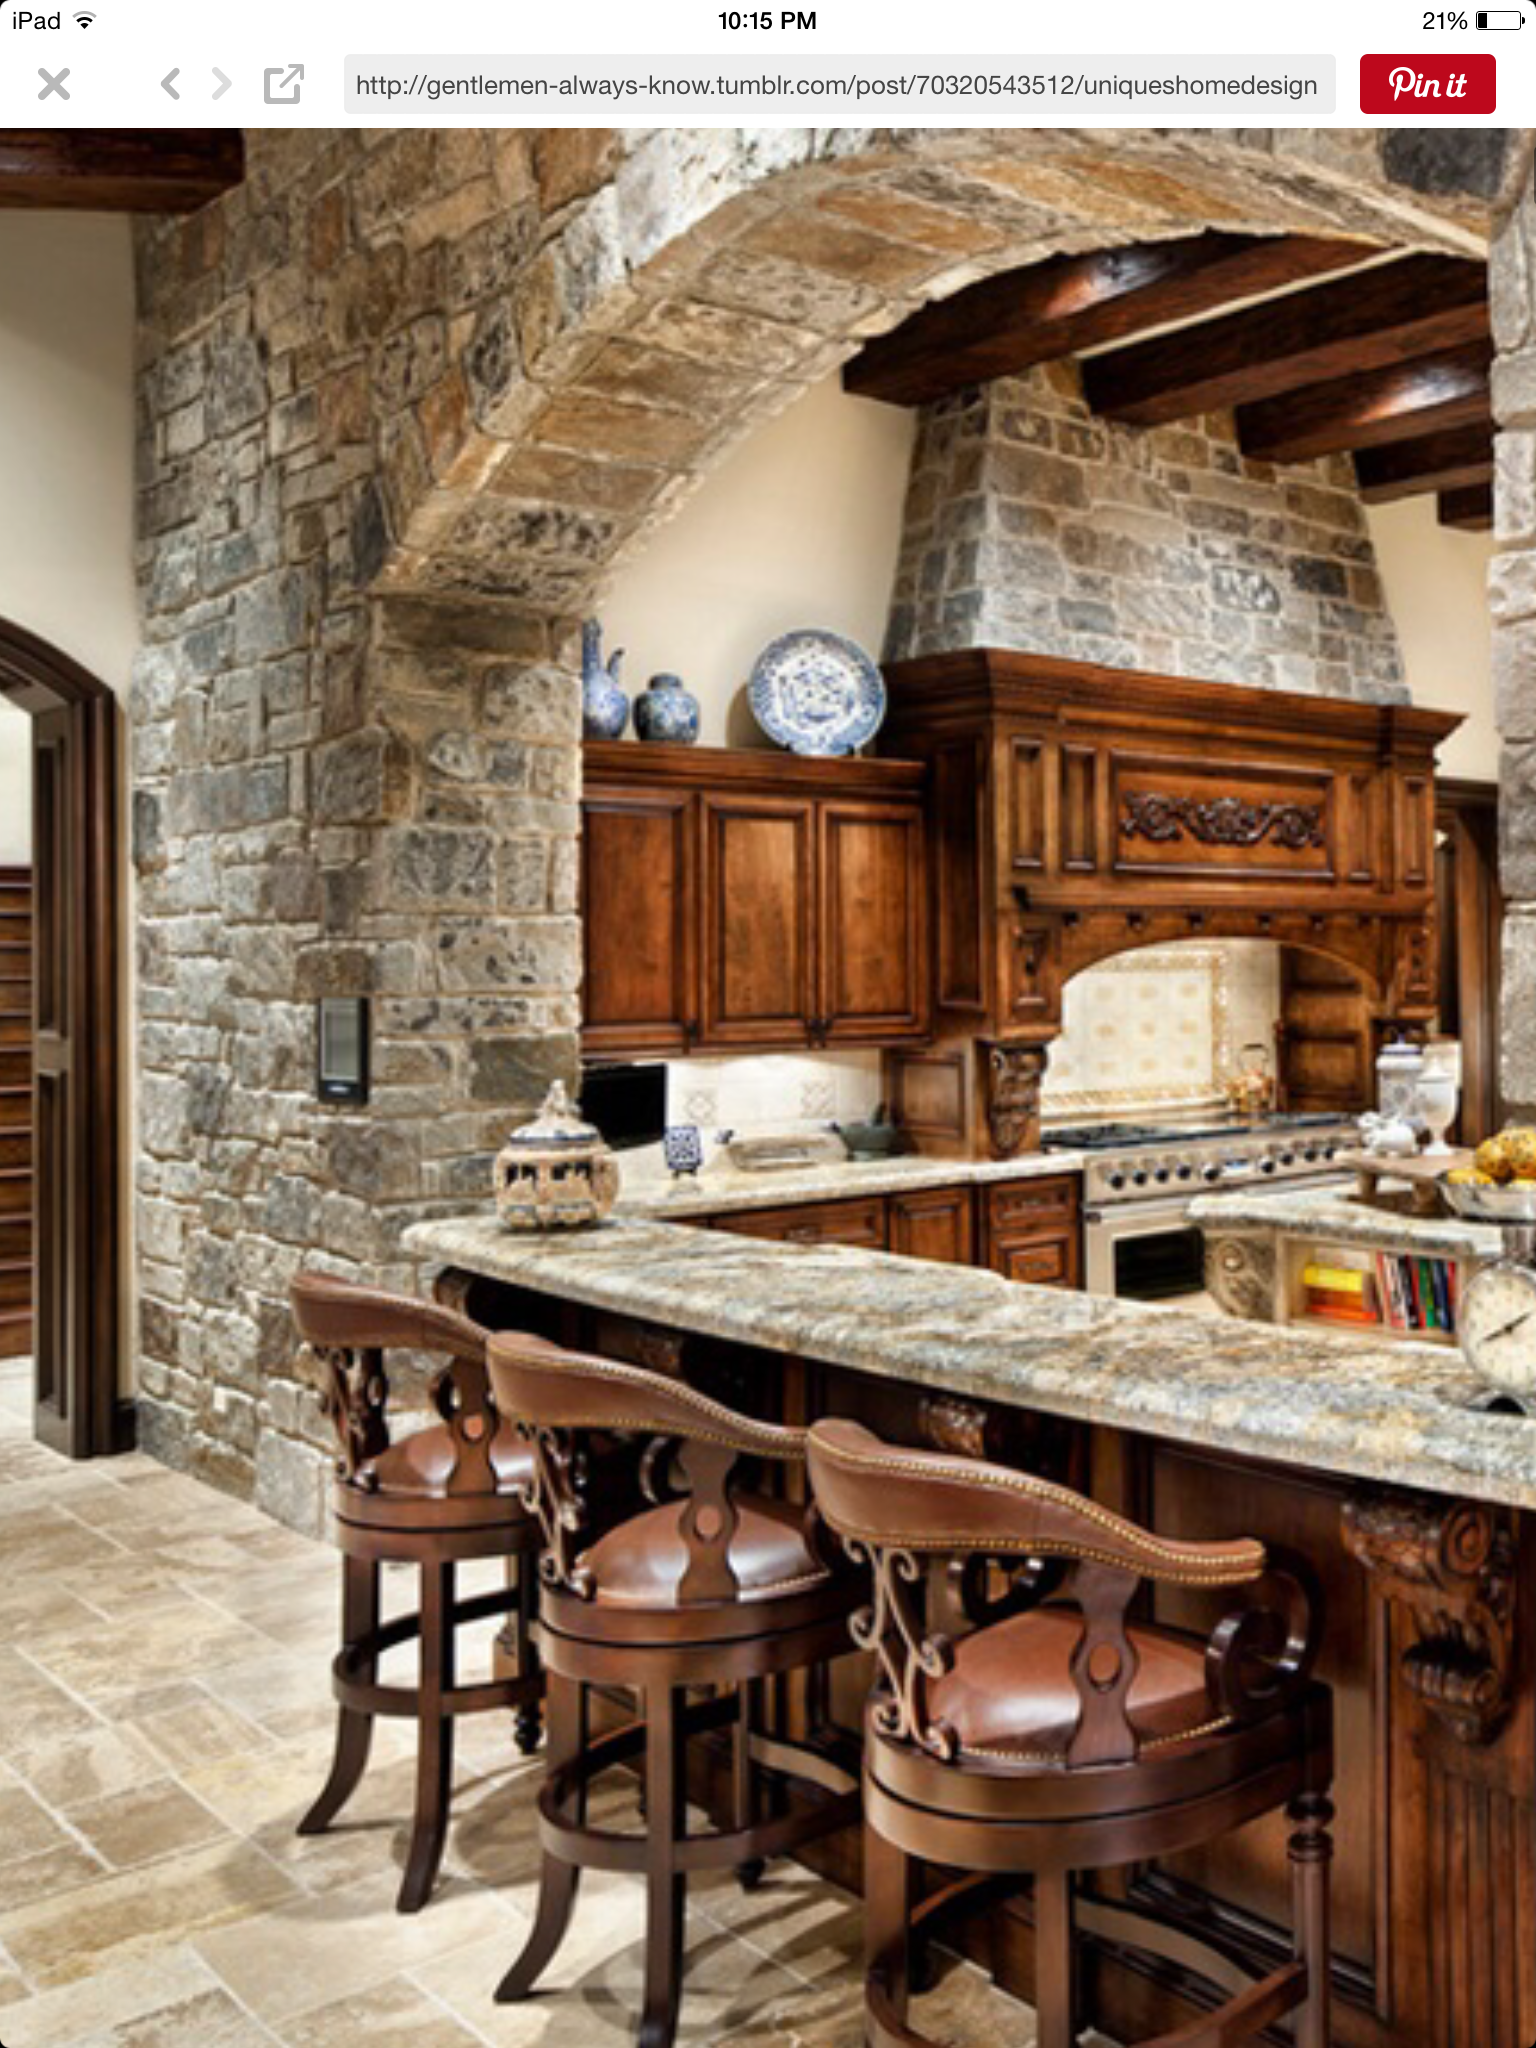 pin by joel johnson on future home ideas stone kitchen design rustic house house design on kitchen decor themes rustic id=31098